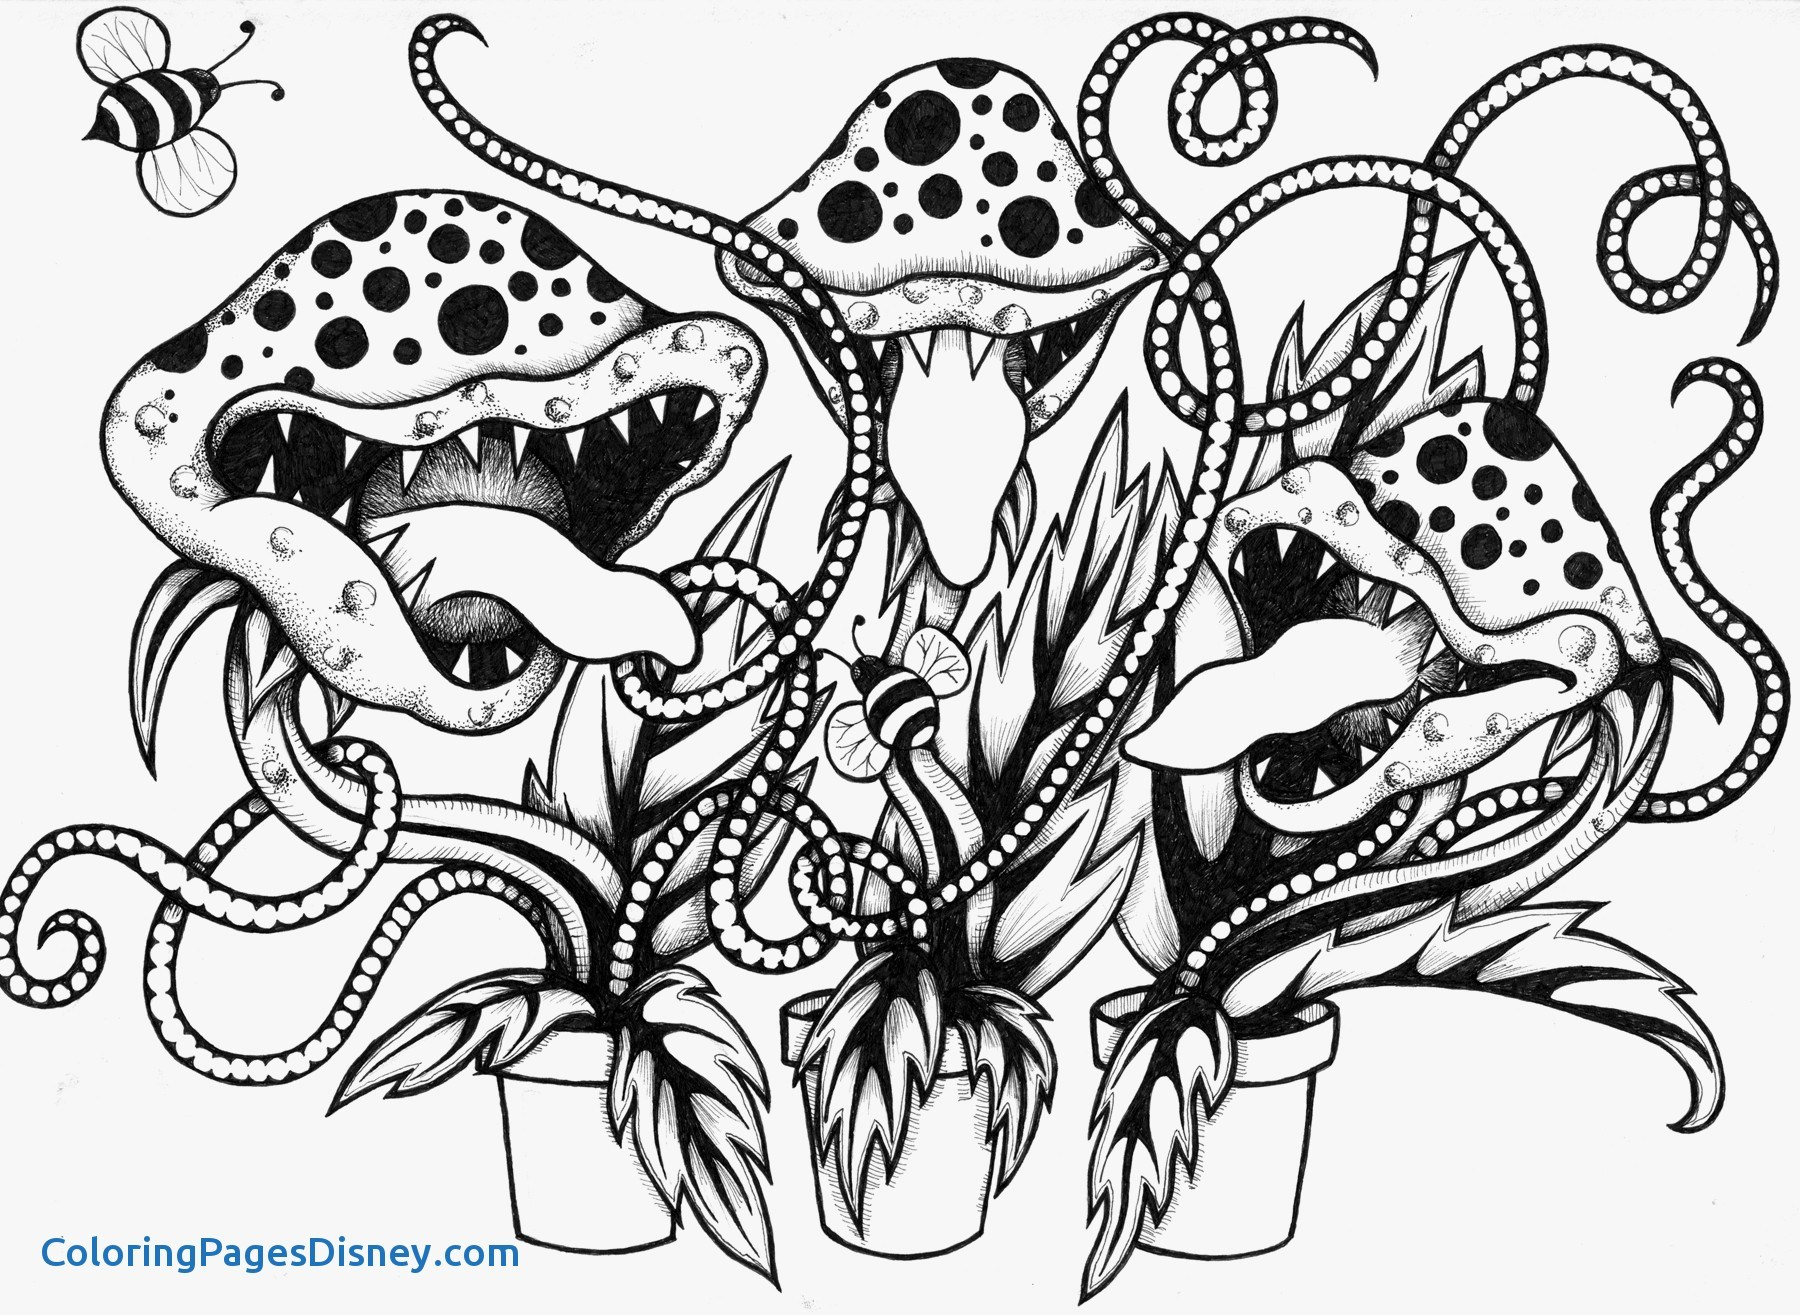 1800x1315 Venus Fly Trap Coloring Pages New Venus Fly Trap Coloring Page